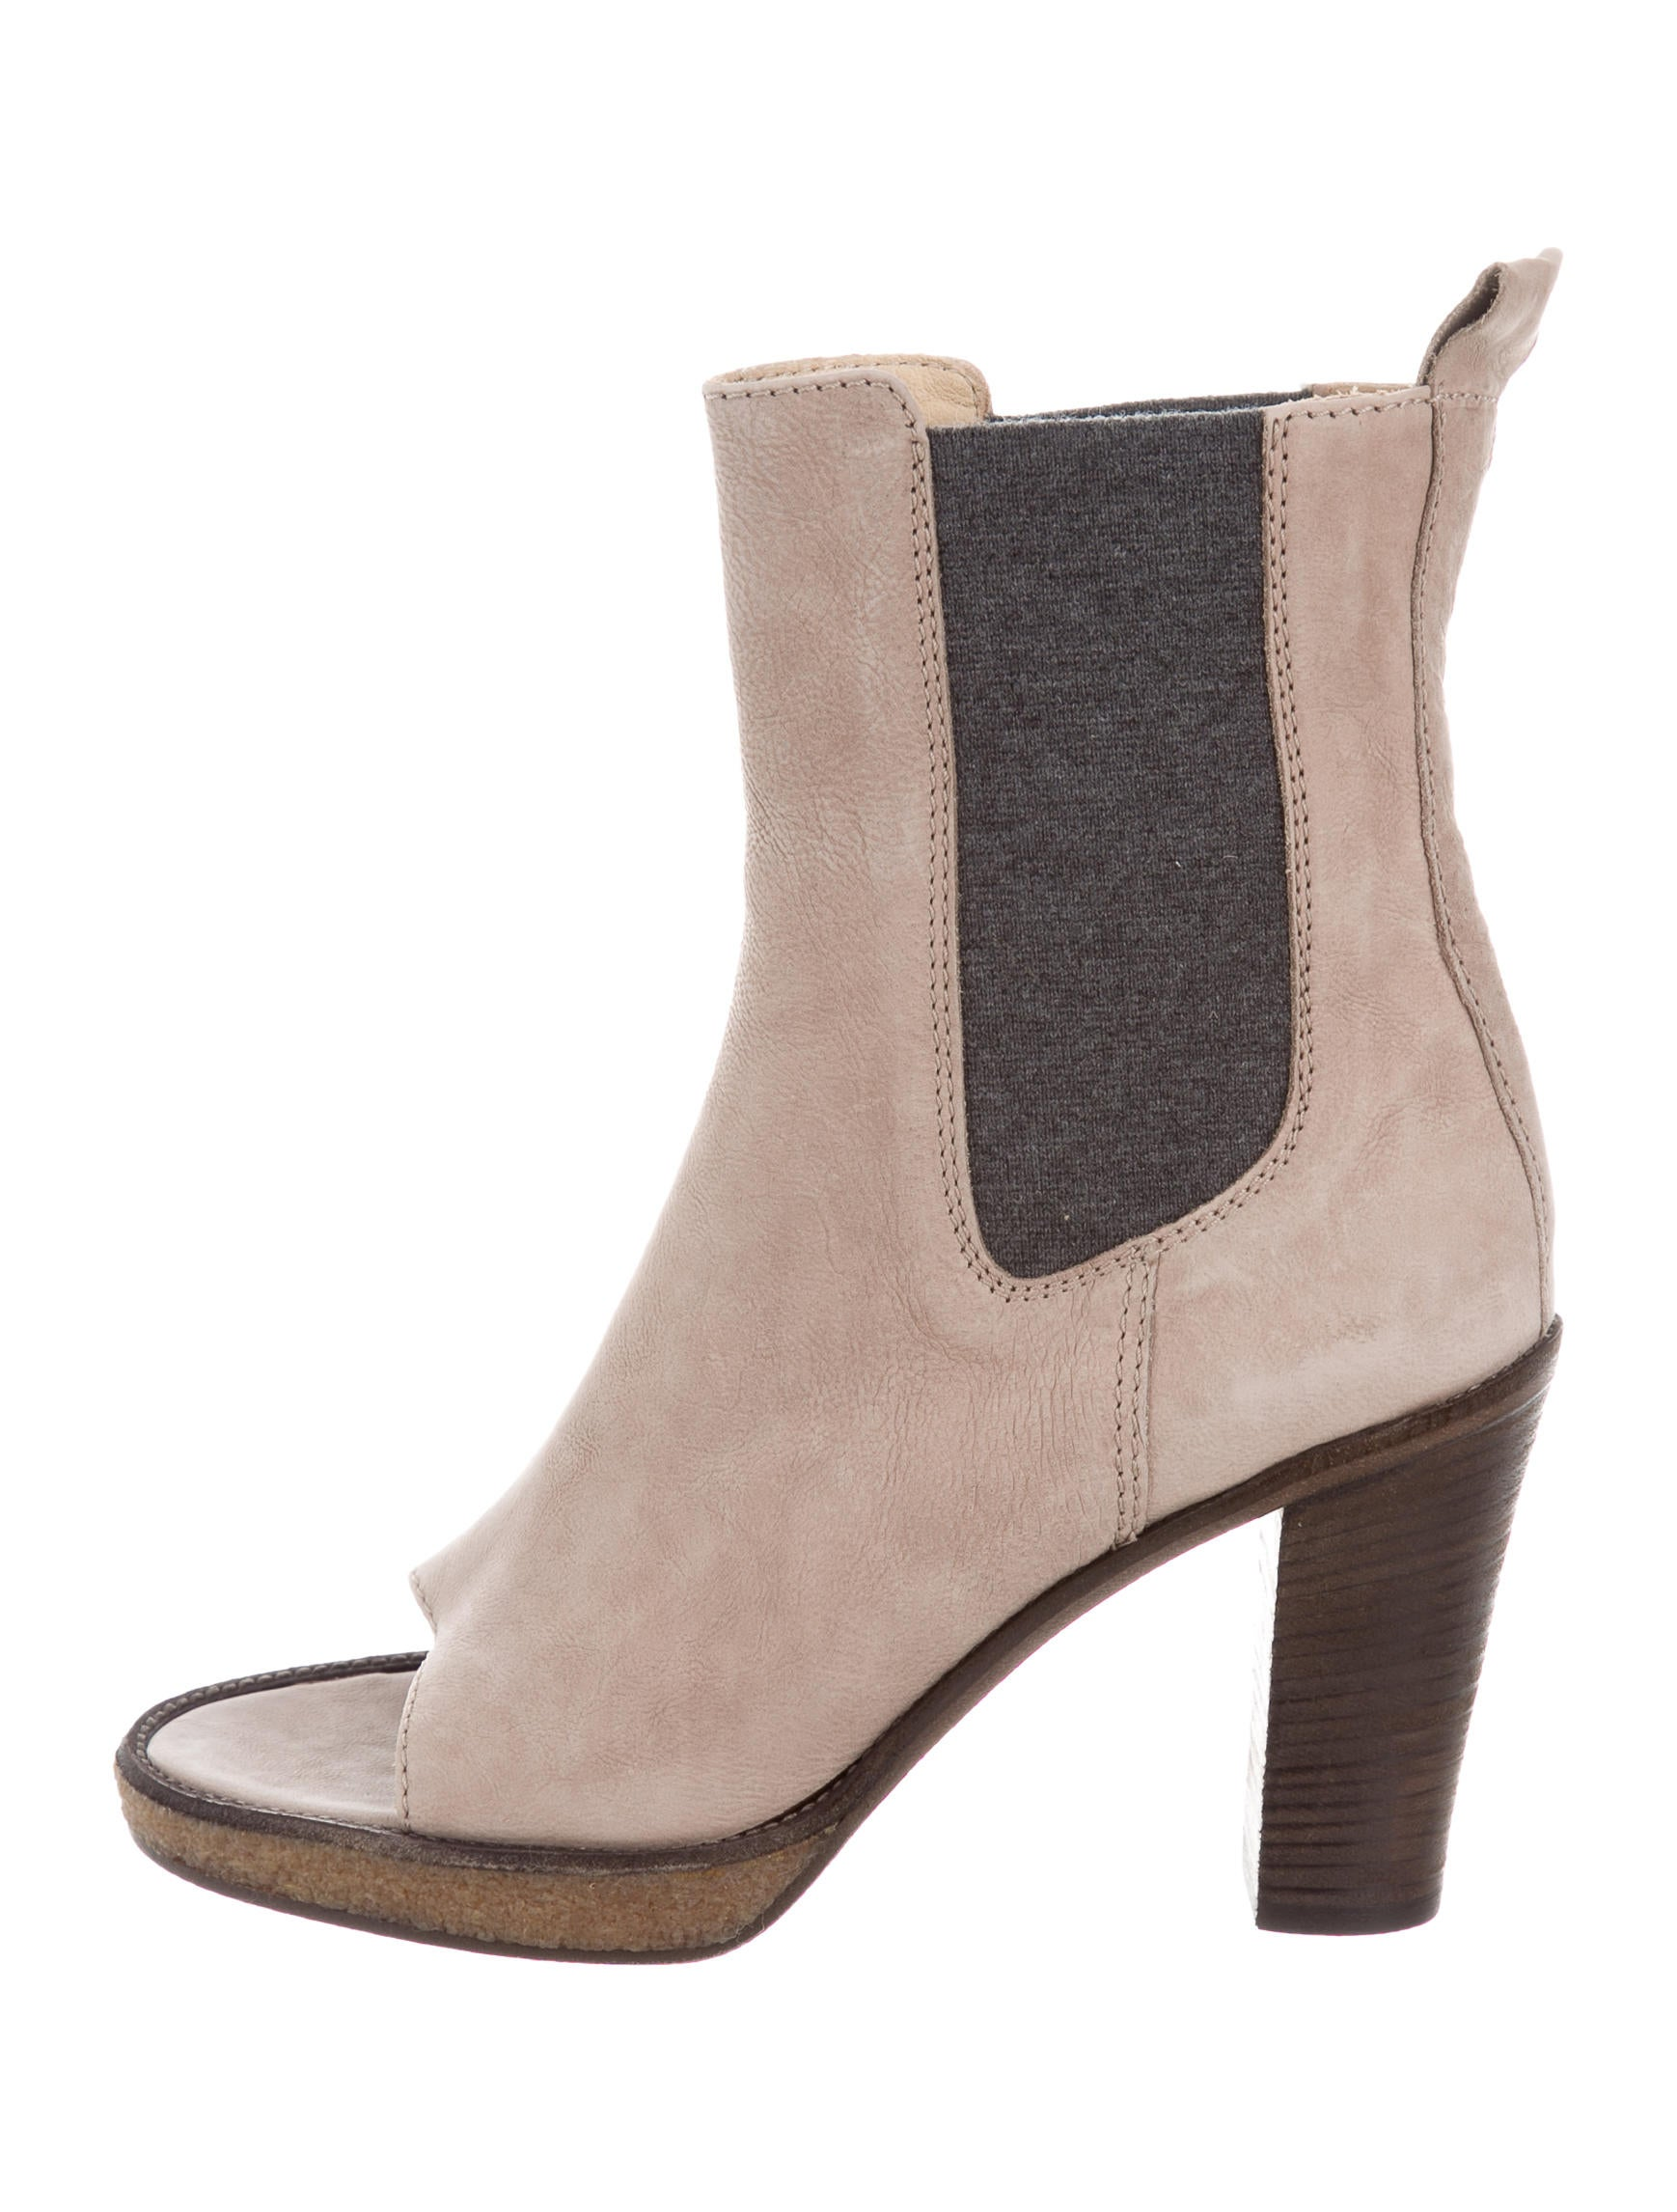 Brunello Cucinelli Leather Peep-Toe Ankle Boots w/ Tags fashionable online outlet new arrival phxjmp40JL